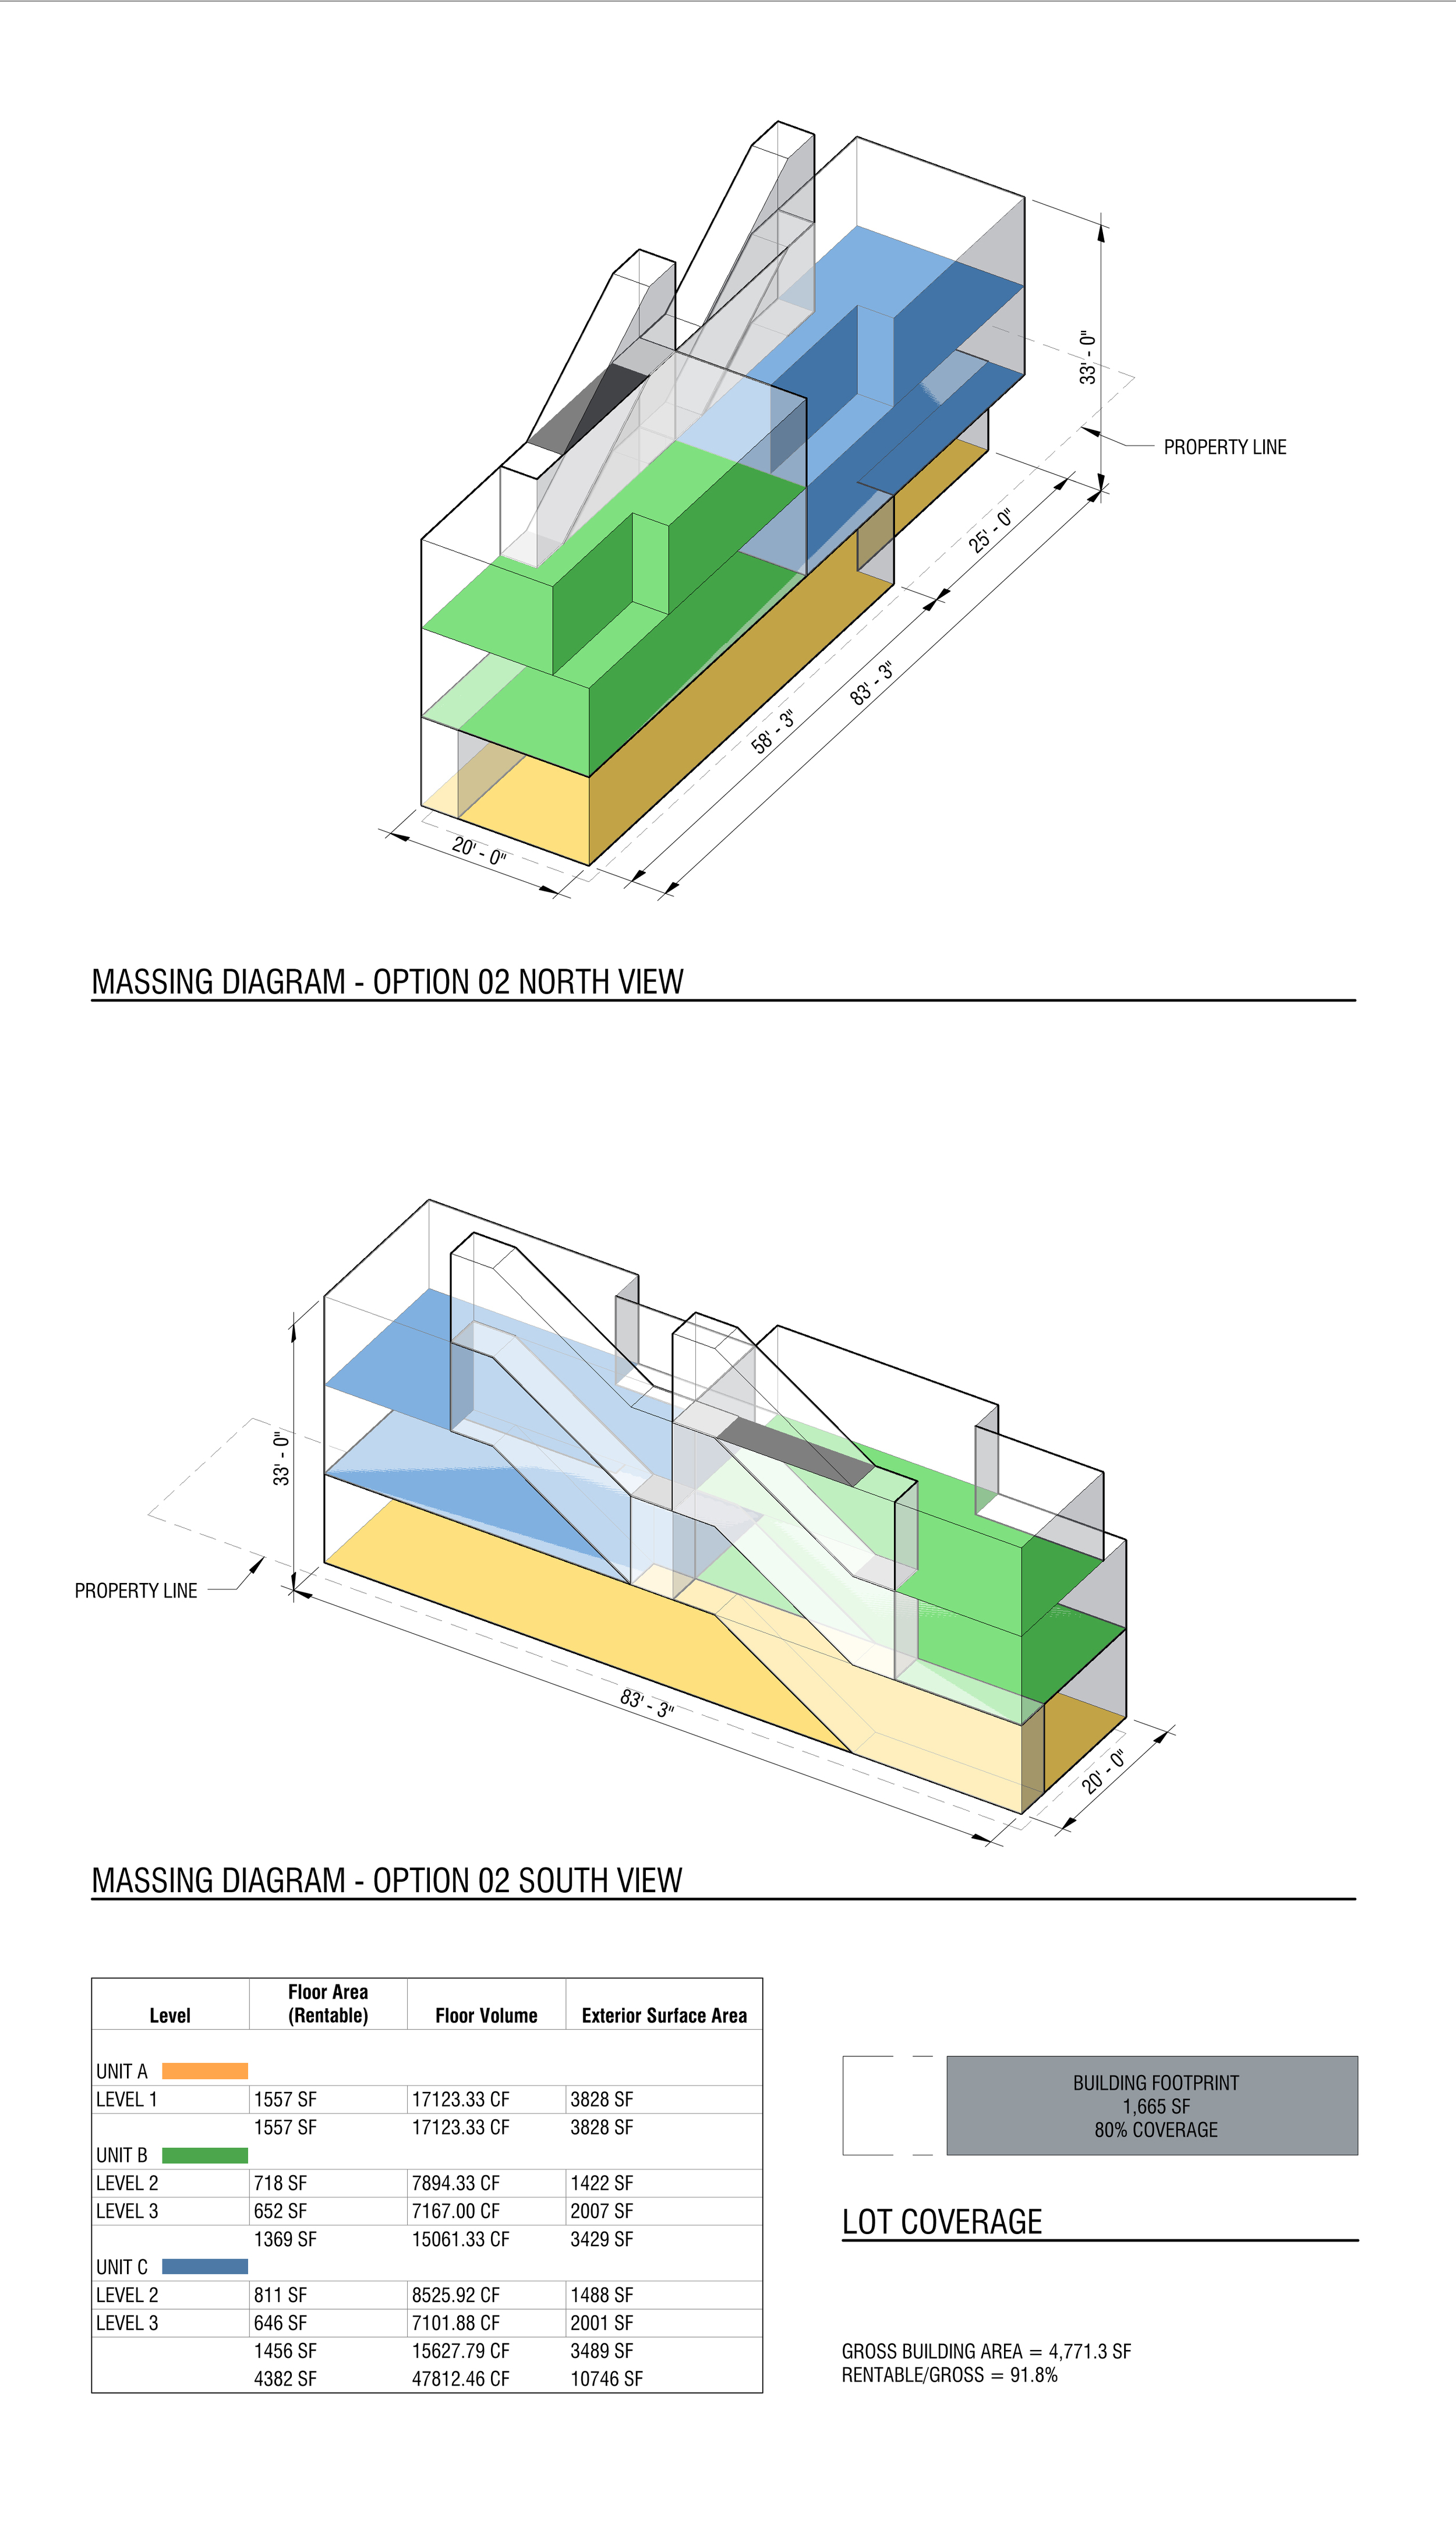 """^  The client (a developer) is interested in """"duplex"""" apartments (i.e., apartments with two internal levels). This iteration proposes this as an idea as well as increasing the overall building lot coverage."""